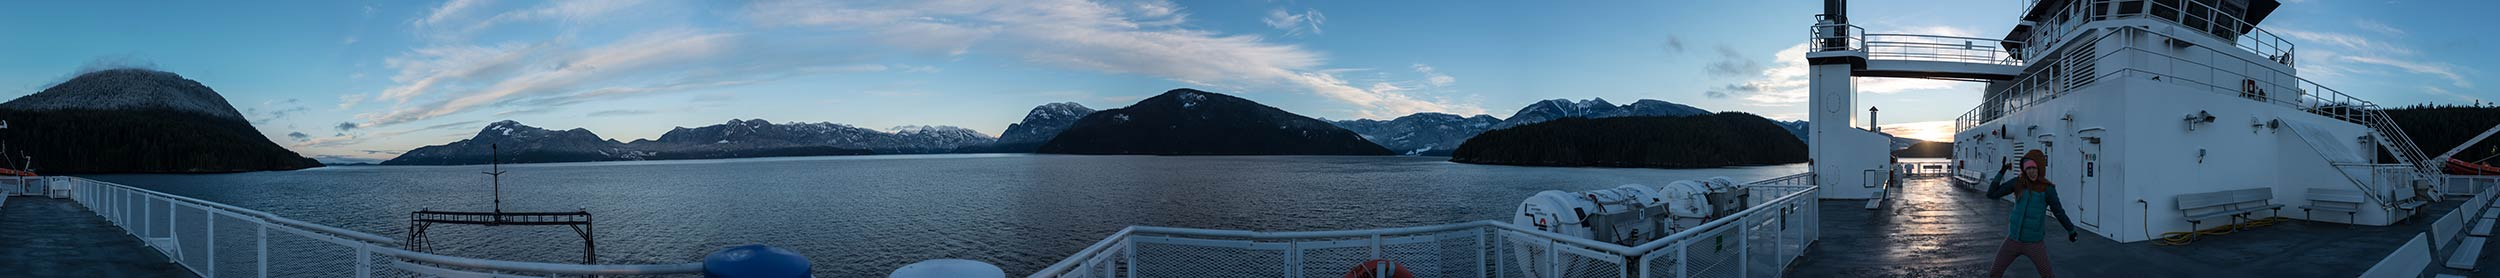 sunshine_coast_ferry_pano.jpg